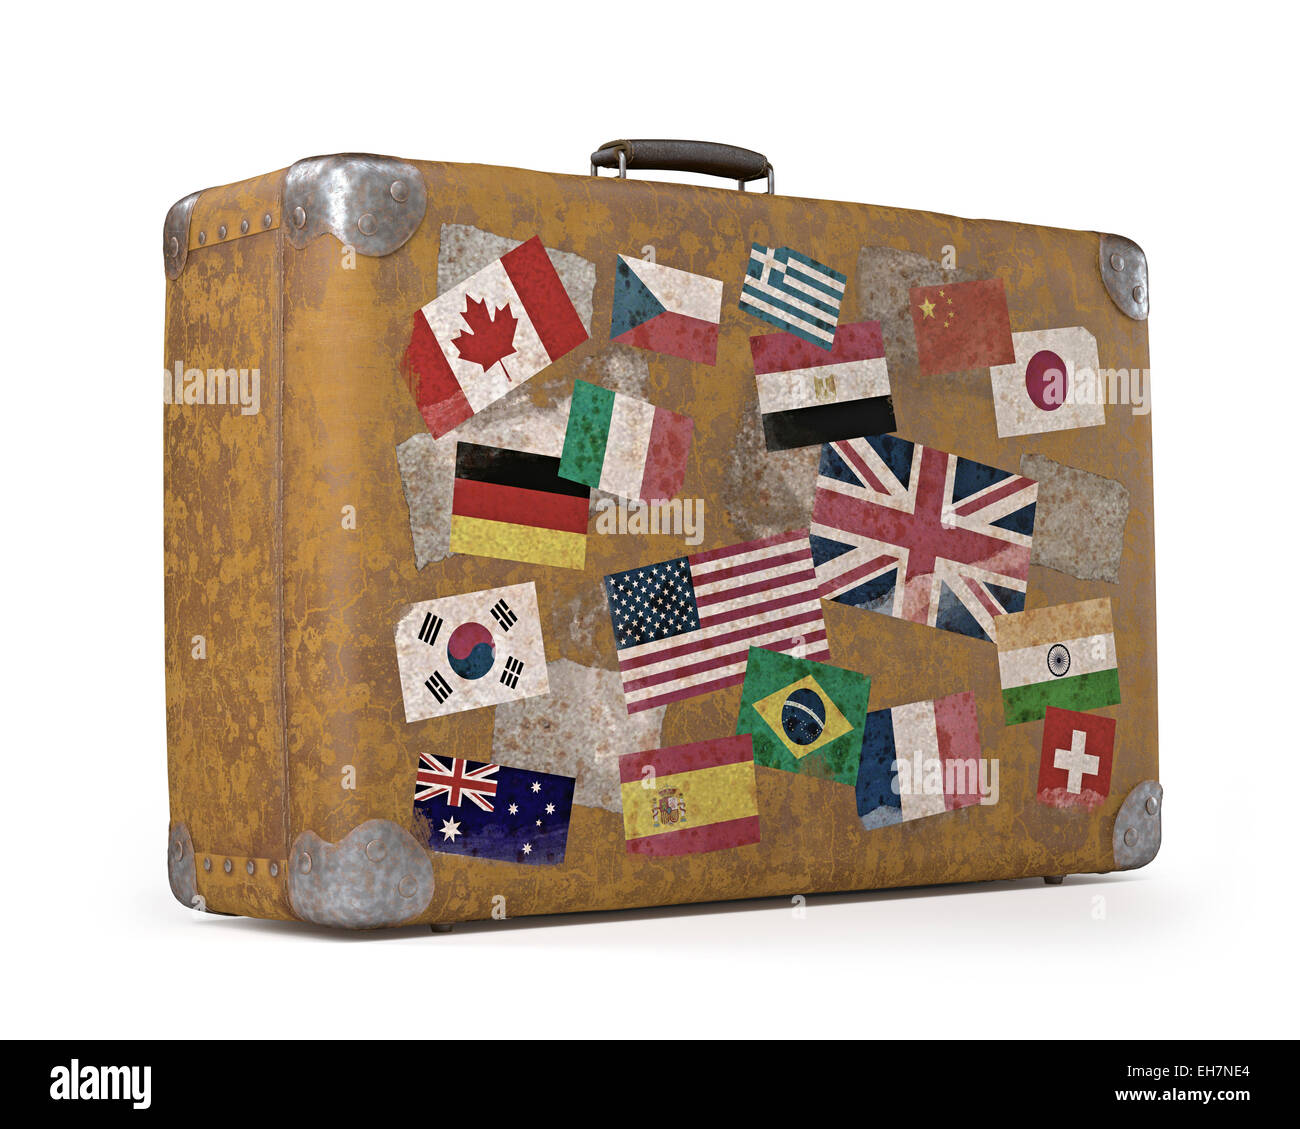 Vintage Suitcase With Stickers Stock Photo Royalty Free